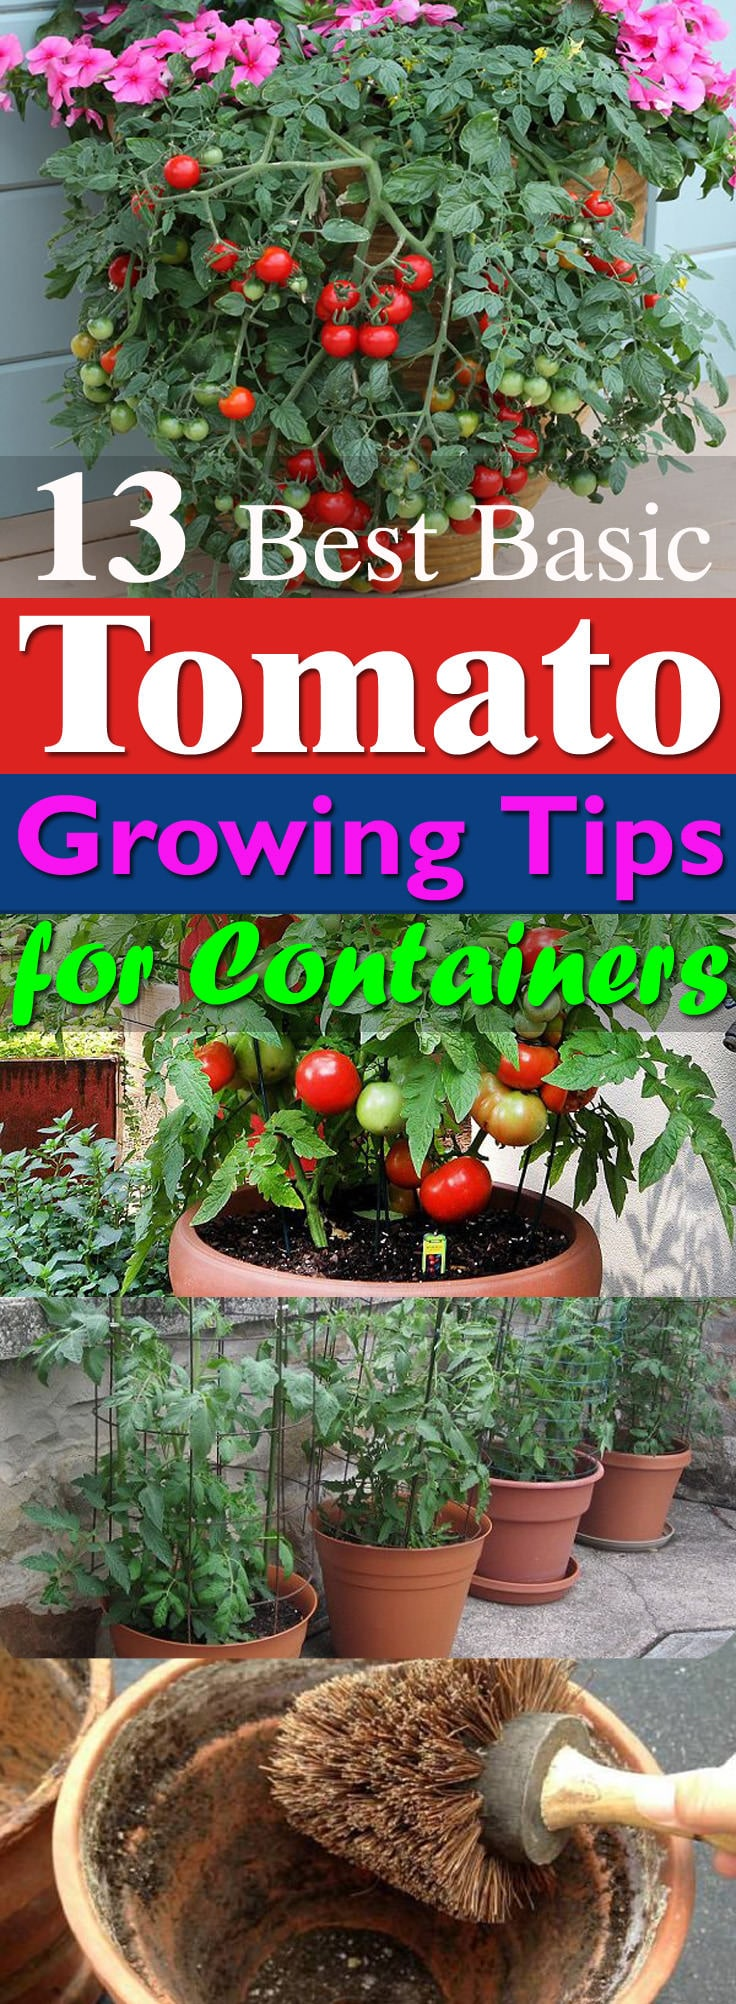 Learn These 13 Basic Tomato Growing Tips For Containers To Grow The Best Red And Juicy